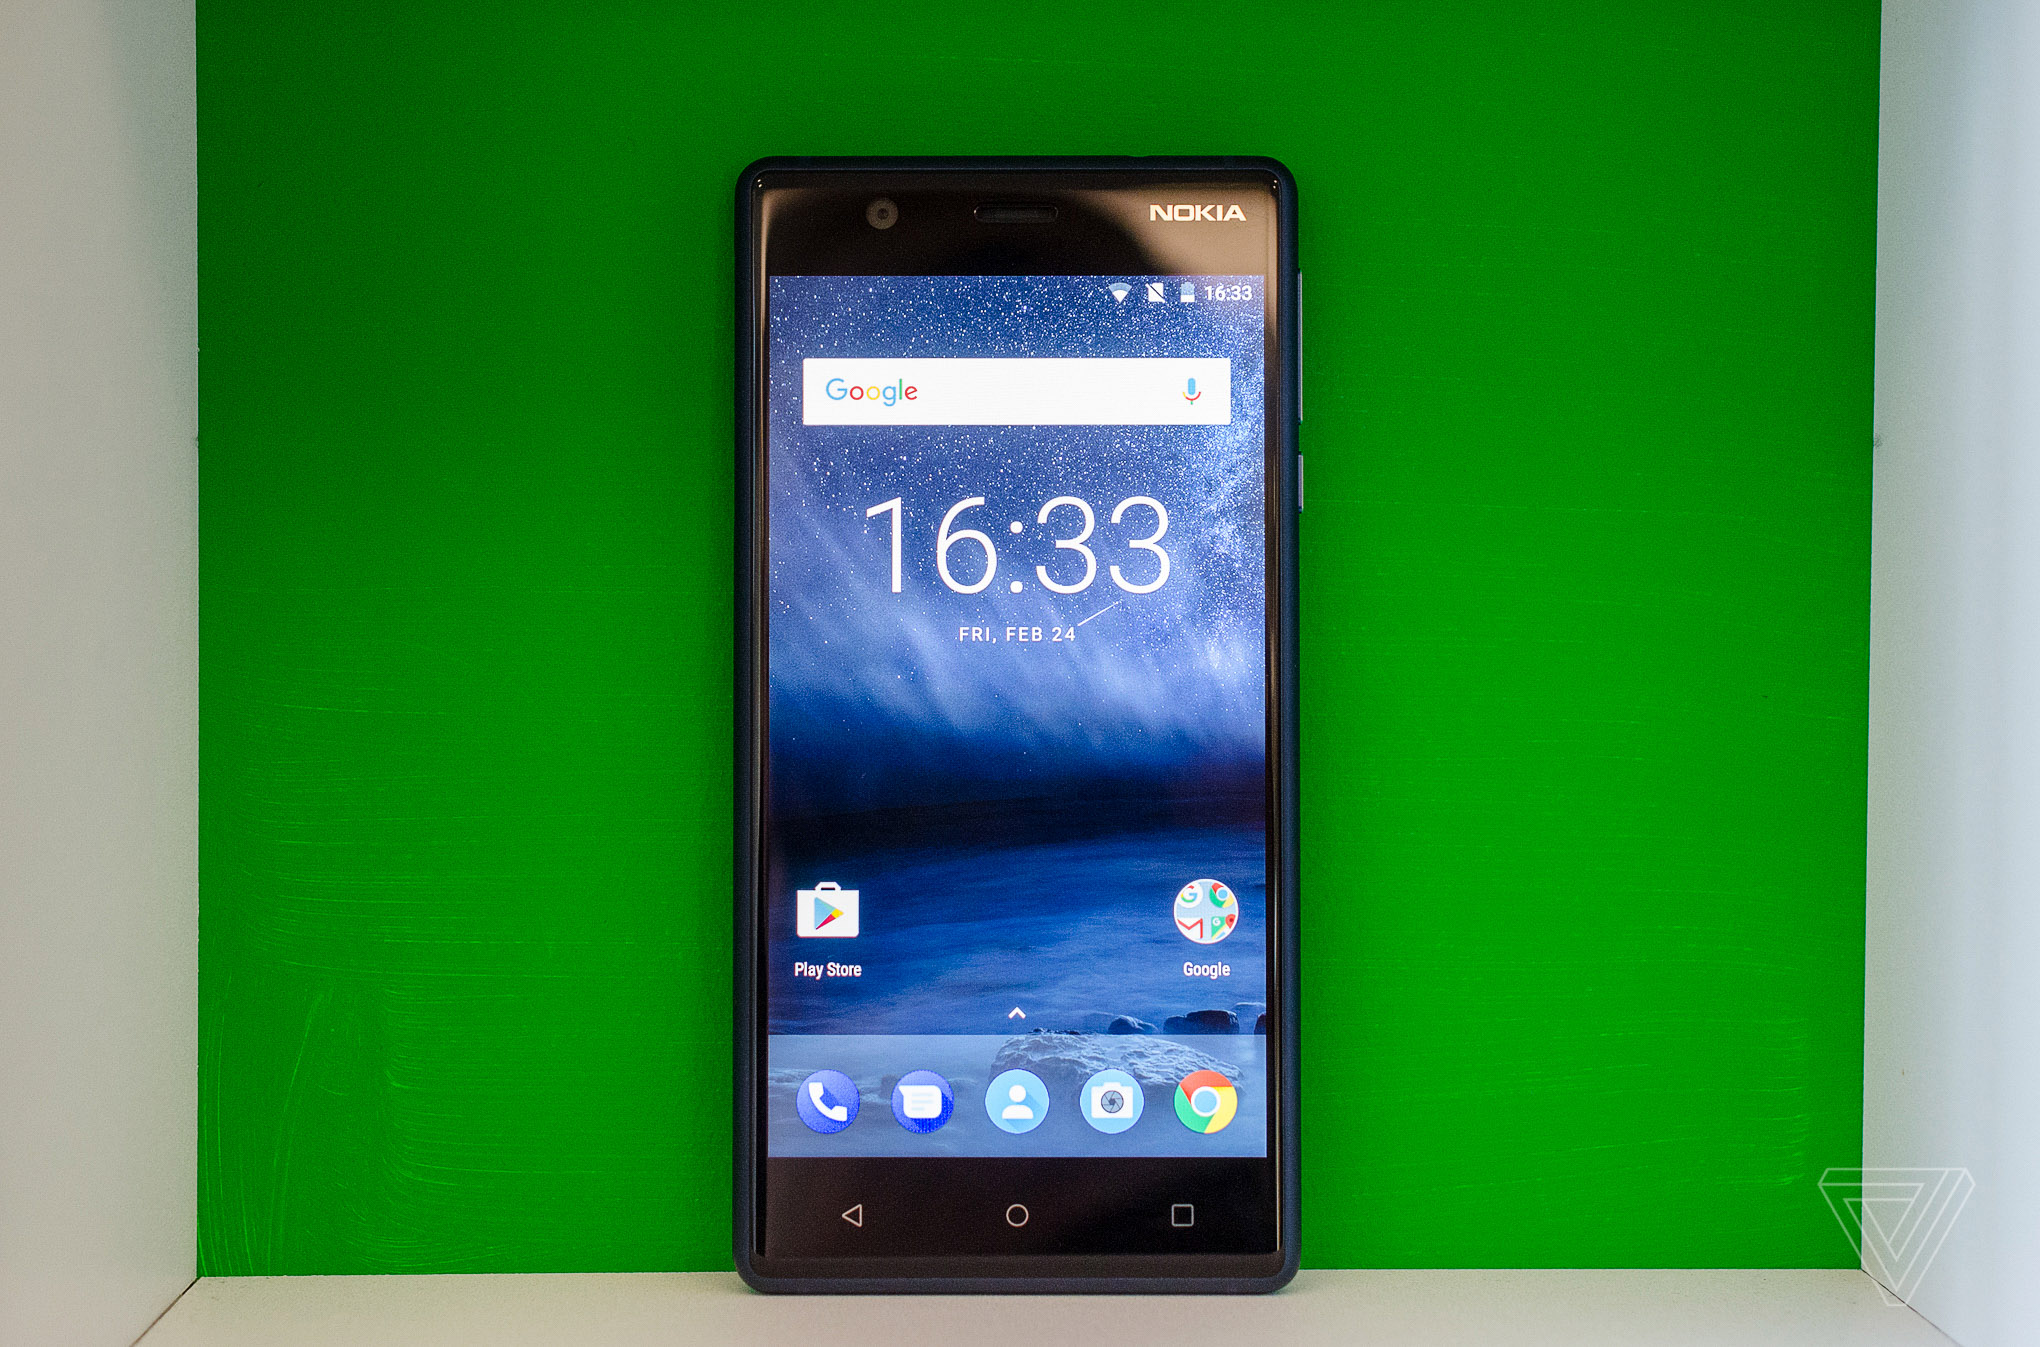 A Look Around the Nokia C7